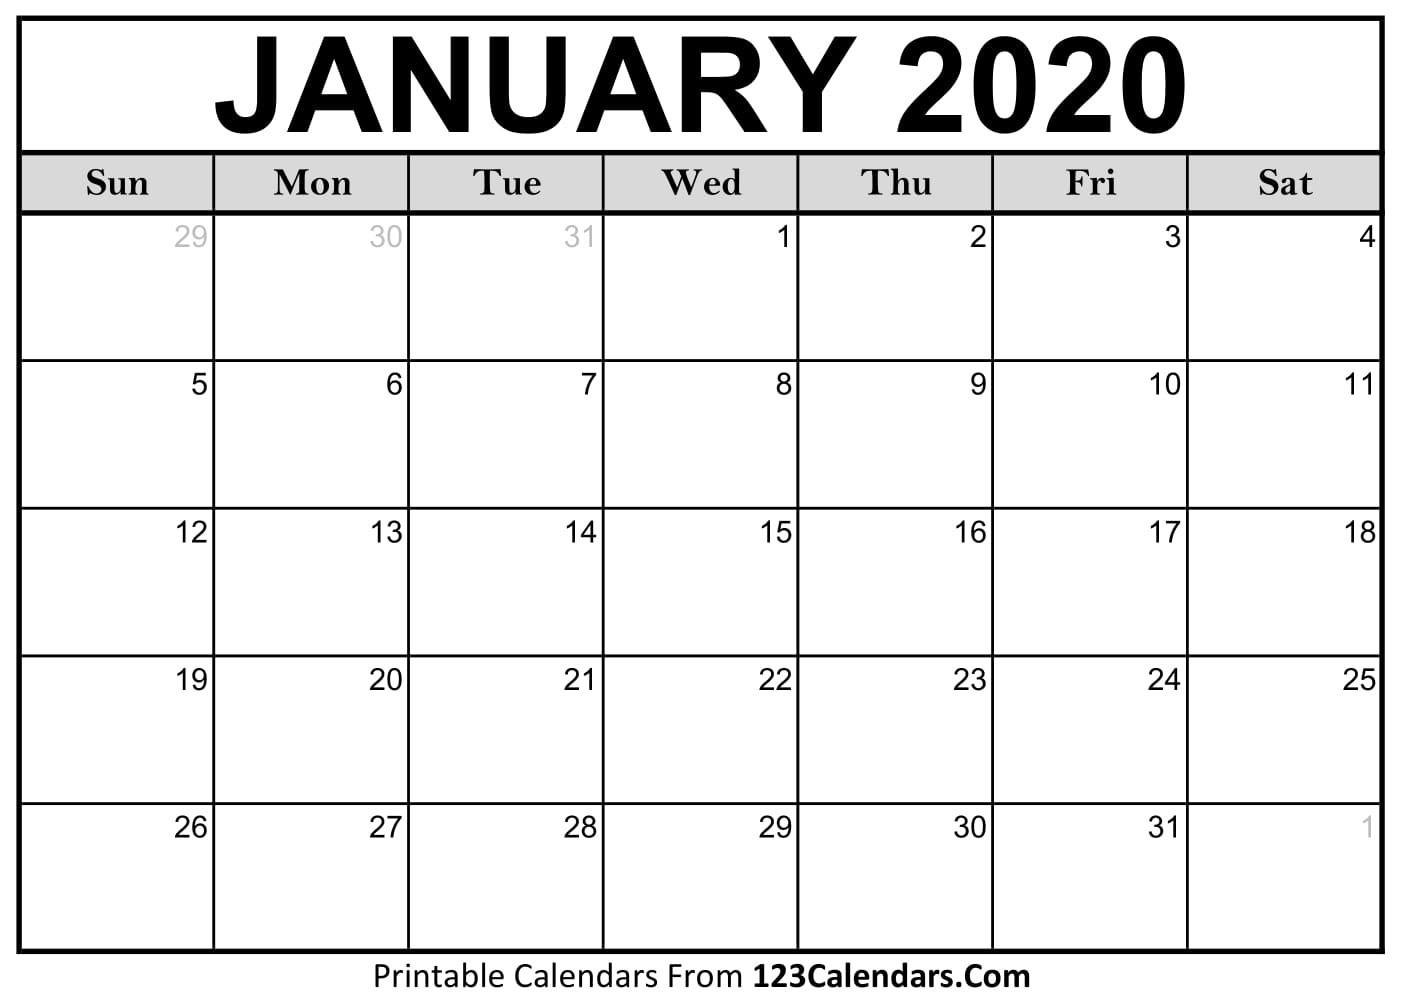 Free Printable Calendar | 123Calendars for Print Free Calendars 2020Without Downloading